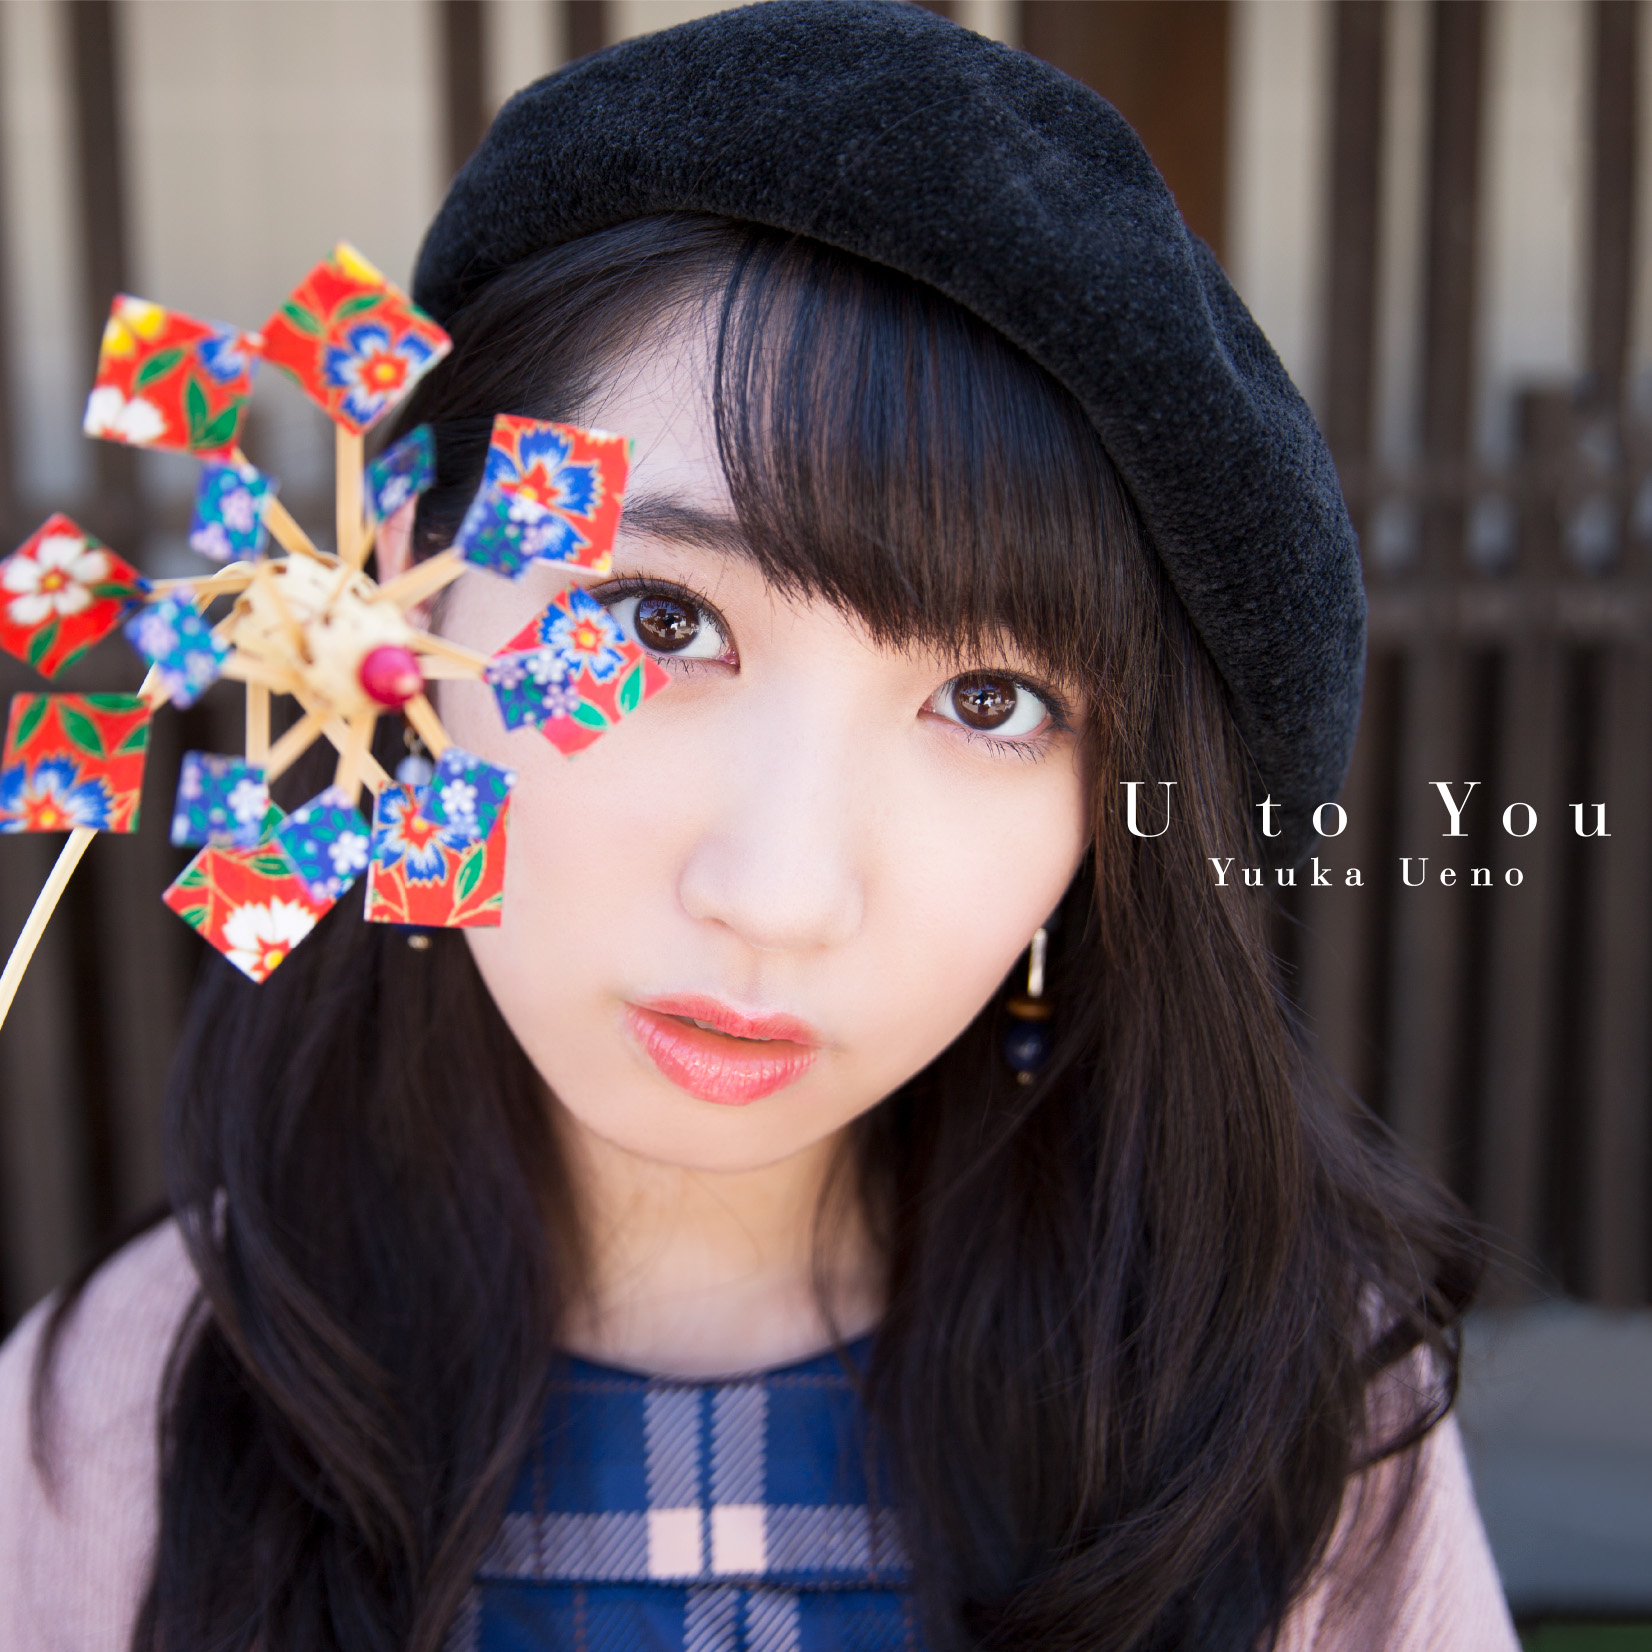 20180214.0916.15 Yuka Ueno (Yuuka Ueno) - U to You (FLAC) cover.jpg